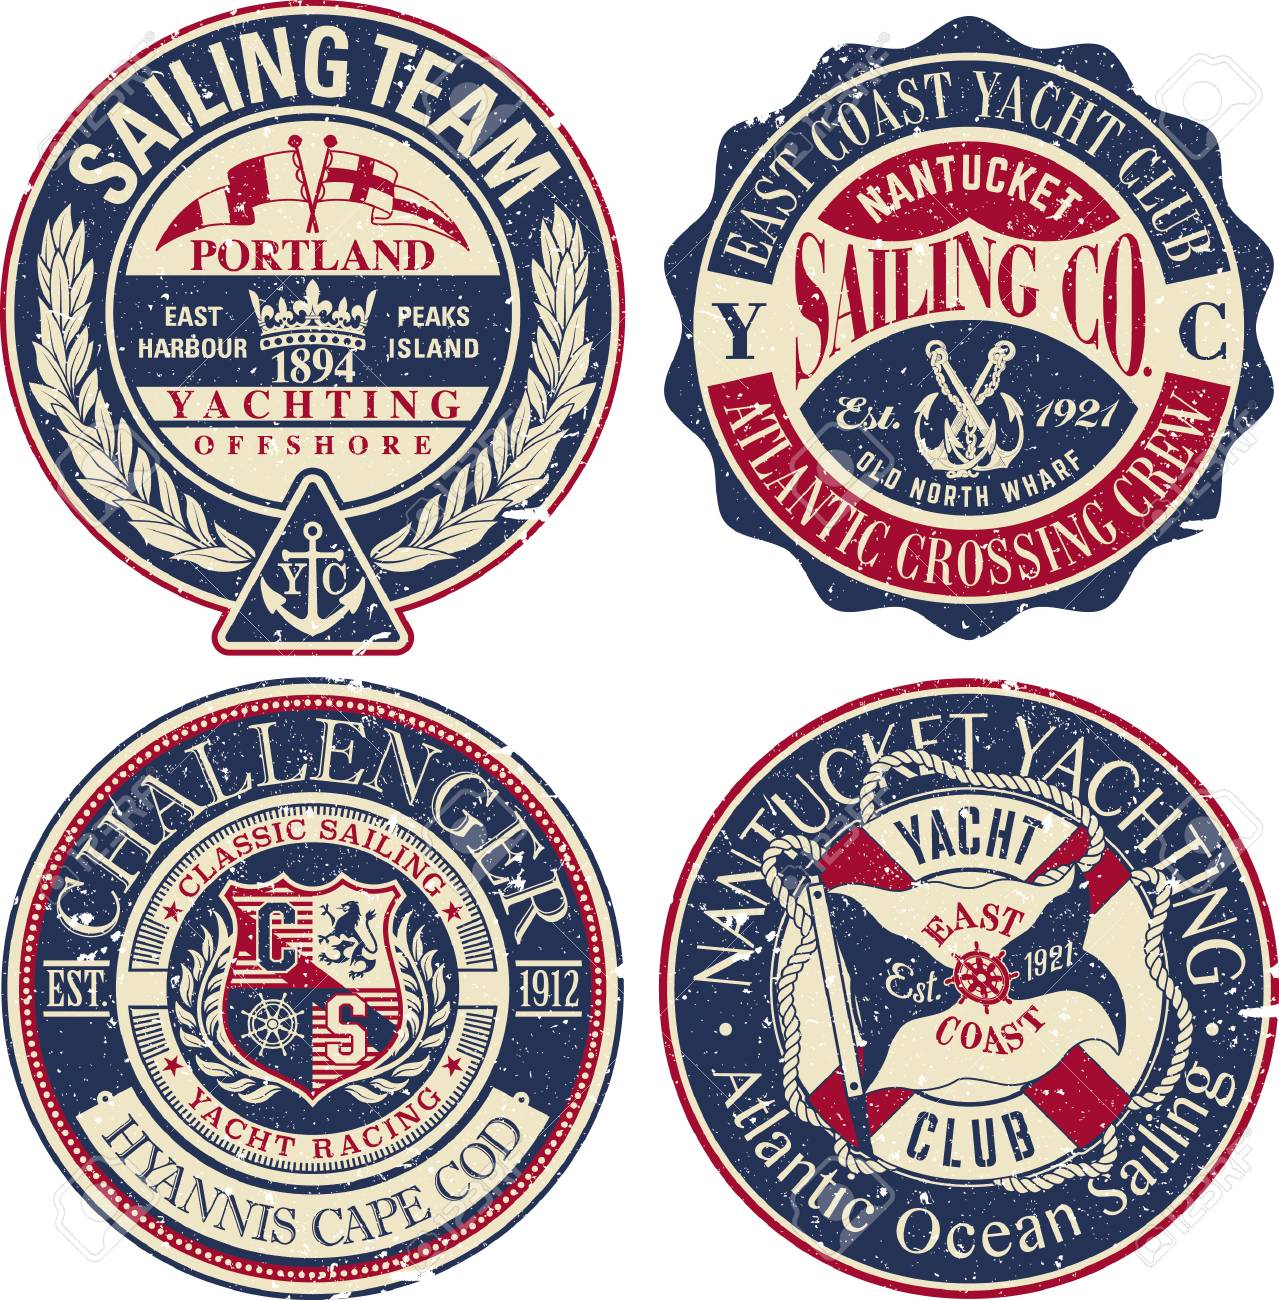 East Coast Yacht club sailing team, vintage vector grunge effect badges collection in separate layers - 110620479